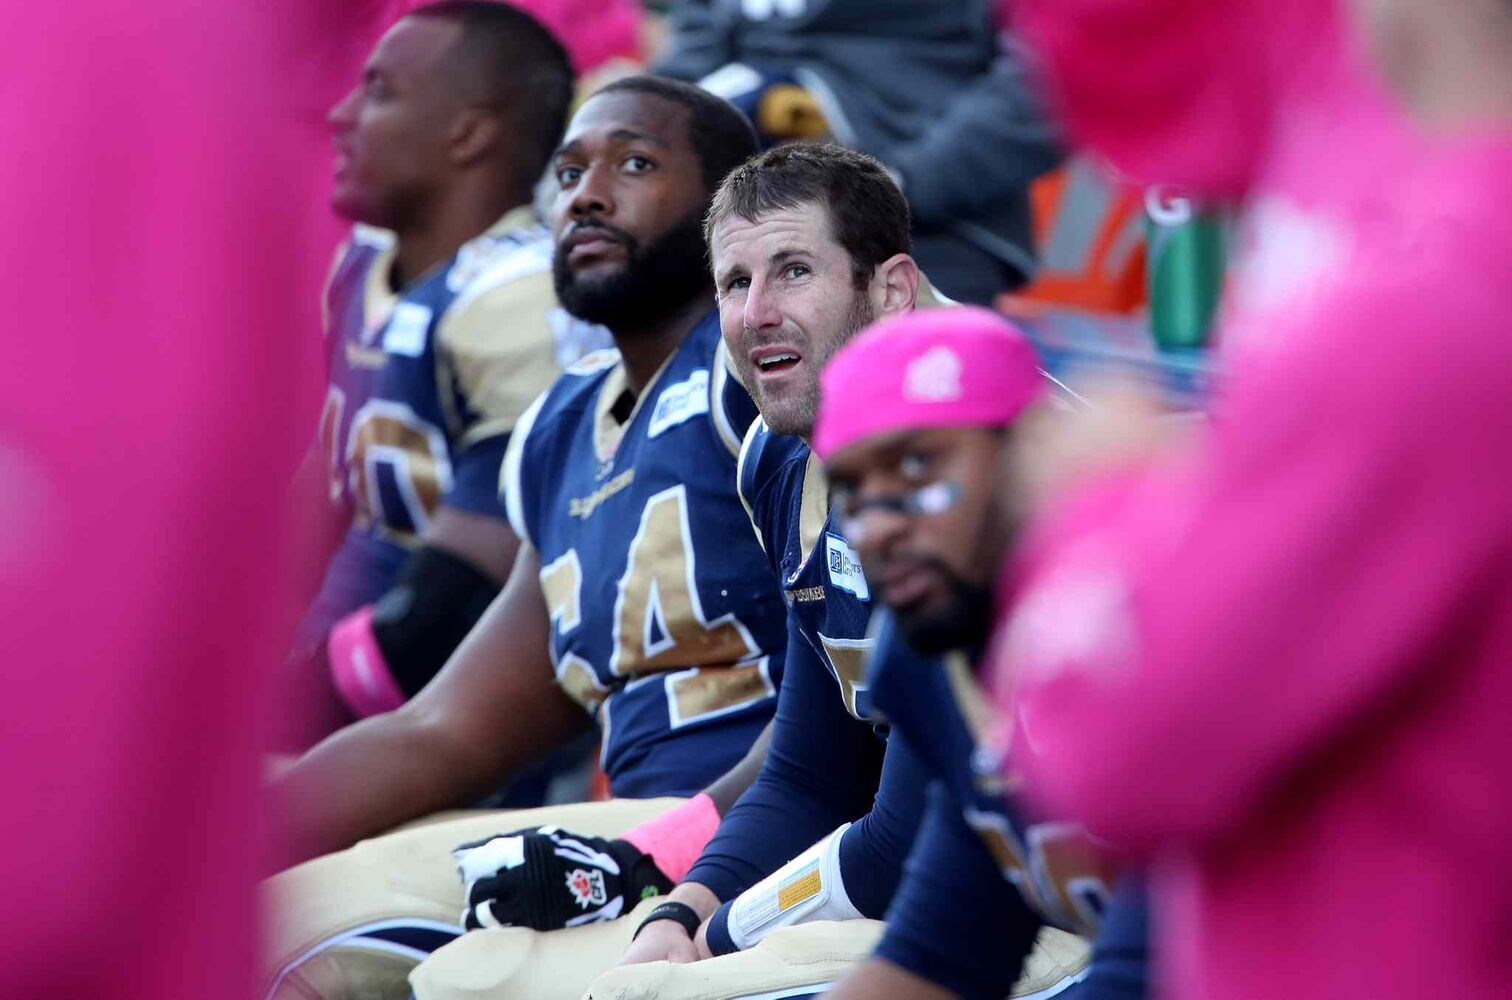 Winnipeg Blue Bombers' quarterback Max Hall (15) can only look on from the bench as the team falls to the Toronto Argonauts.